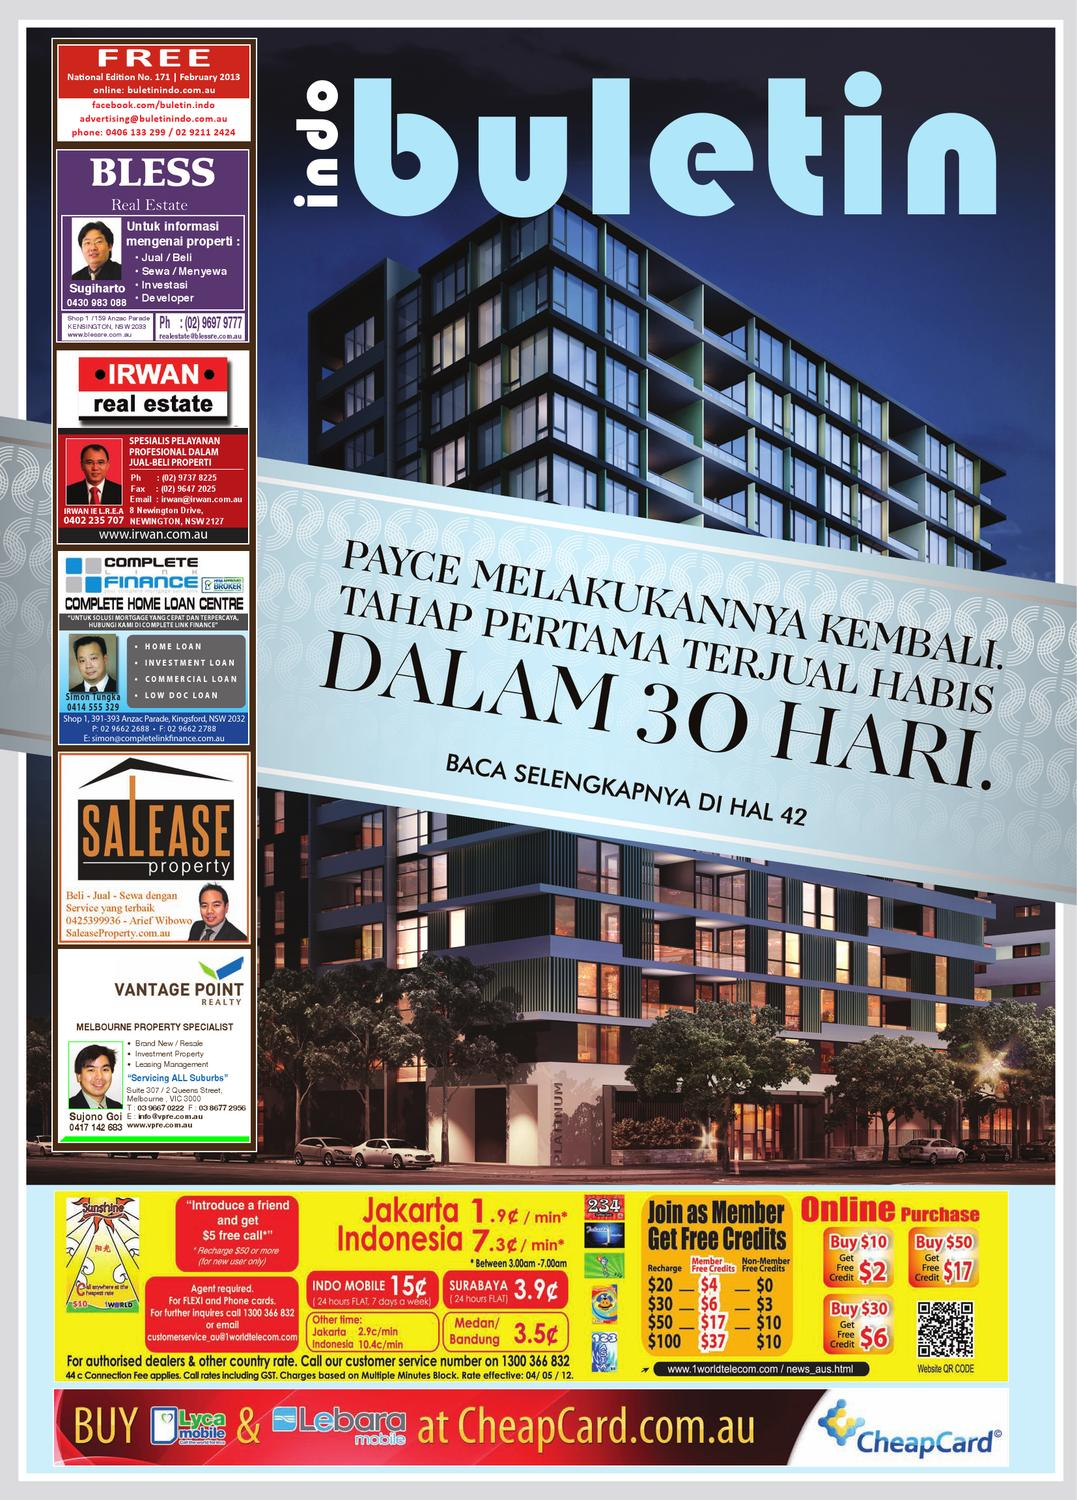 Buletin Indo February 2013 by Buletin Indo - issuu 57a66caa70